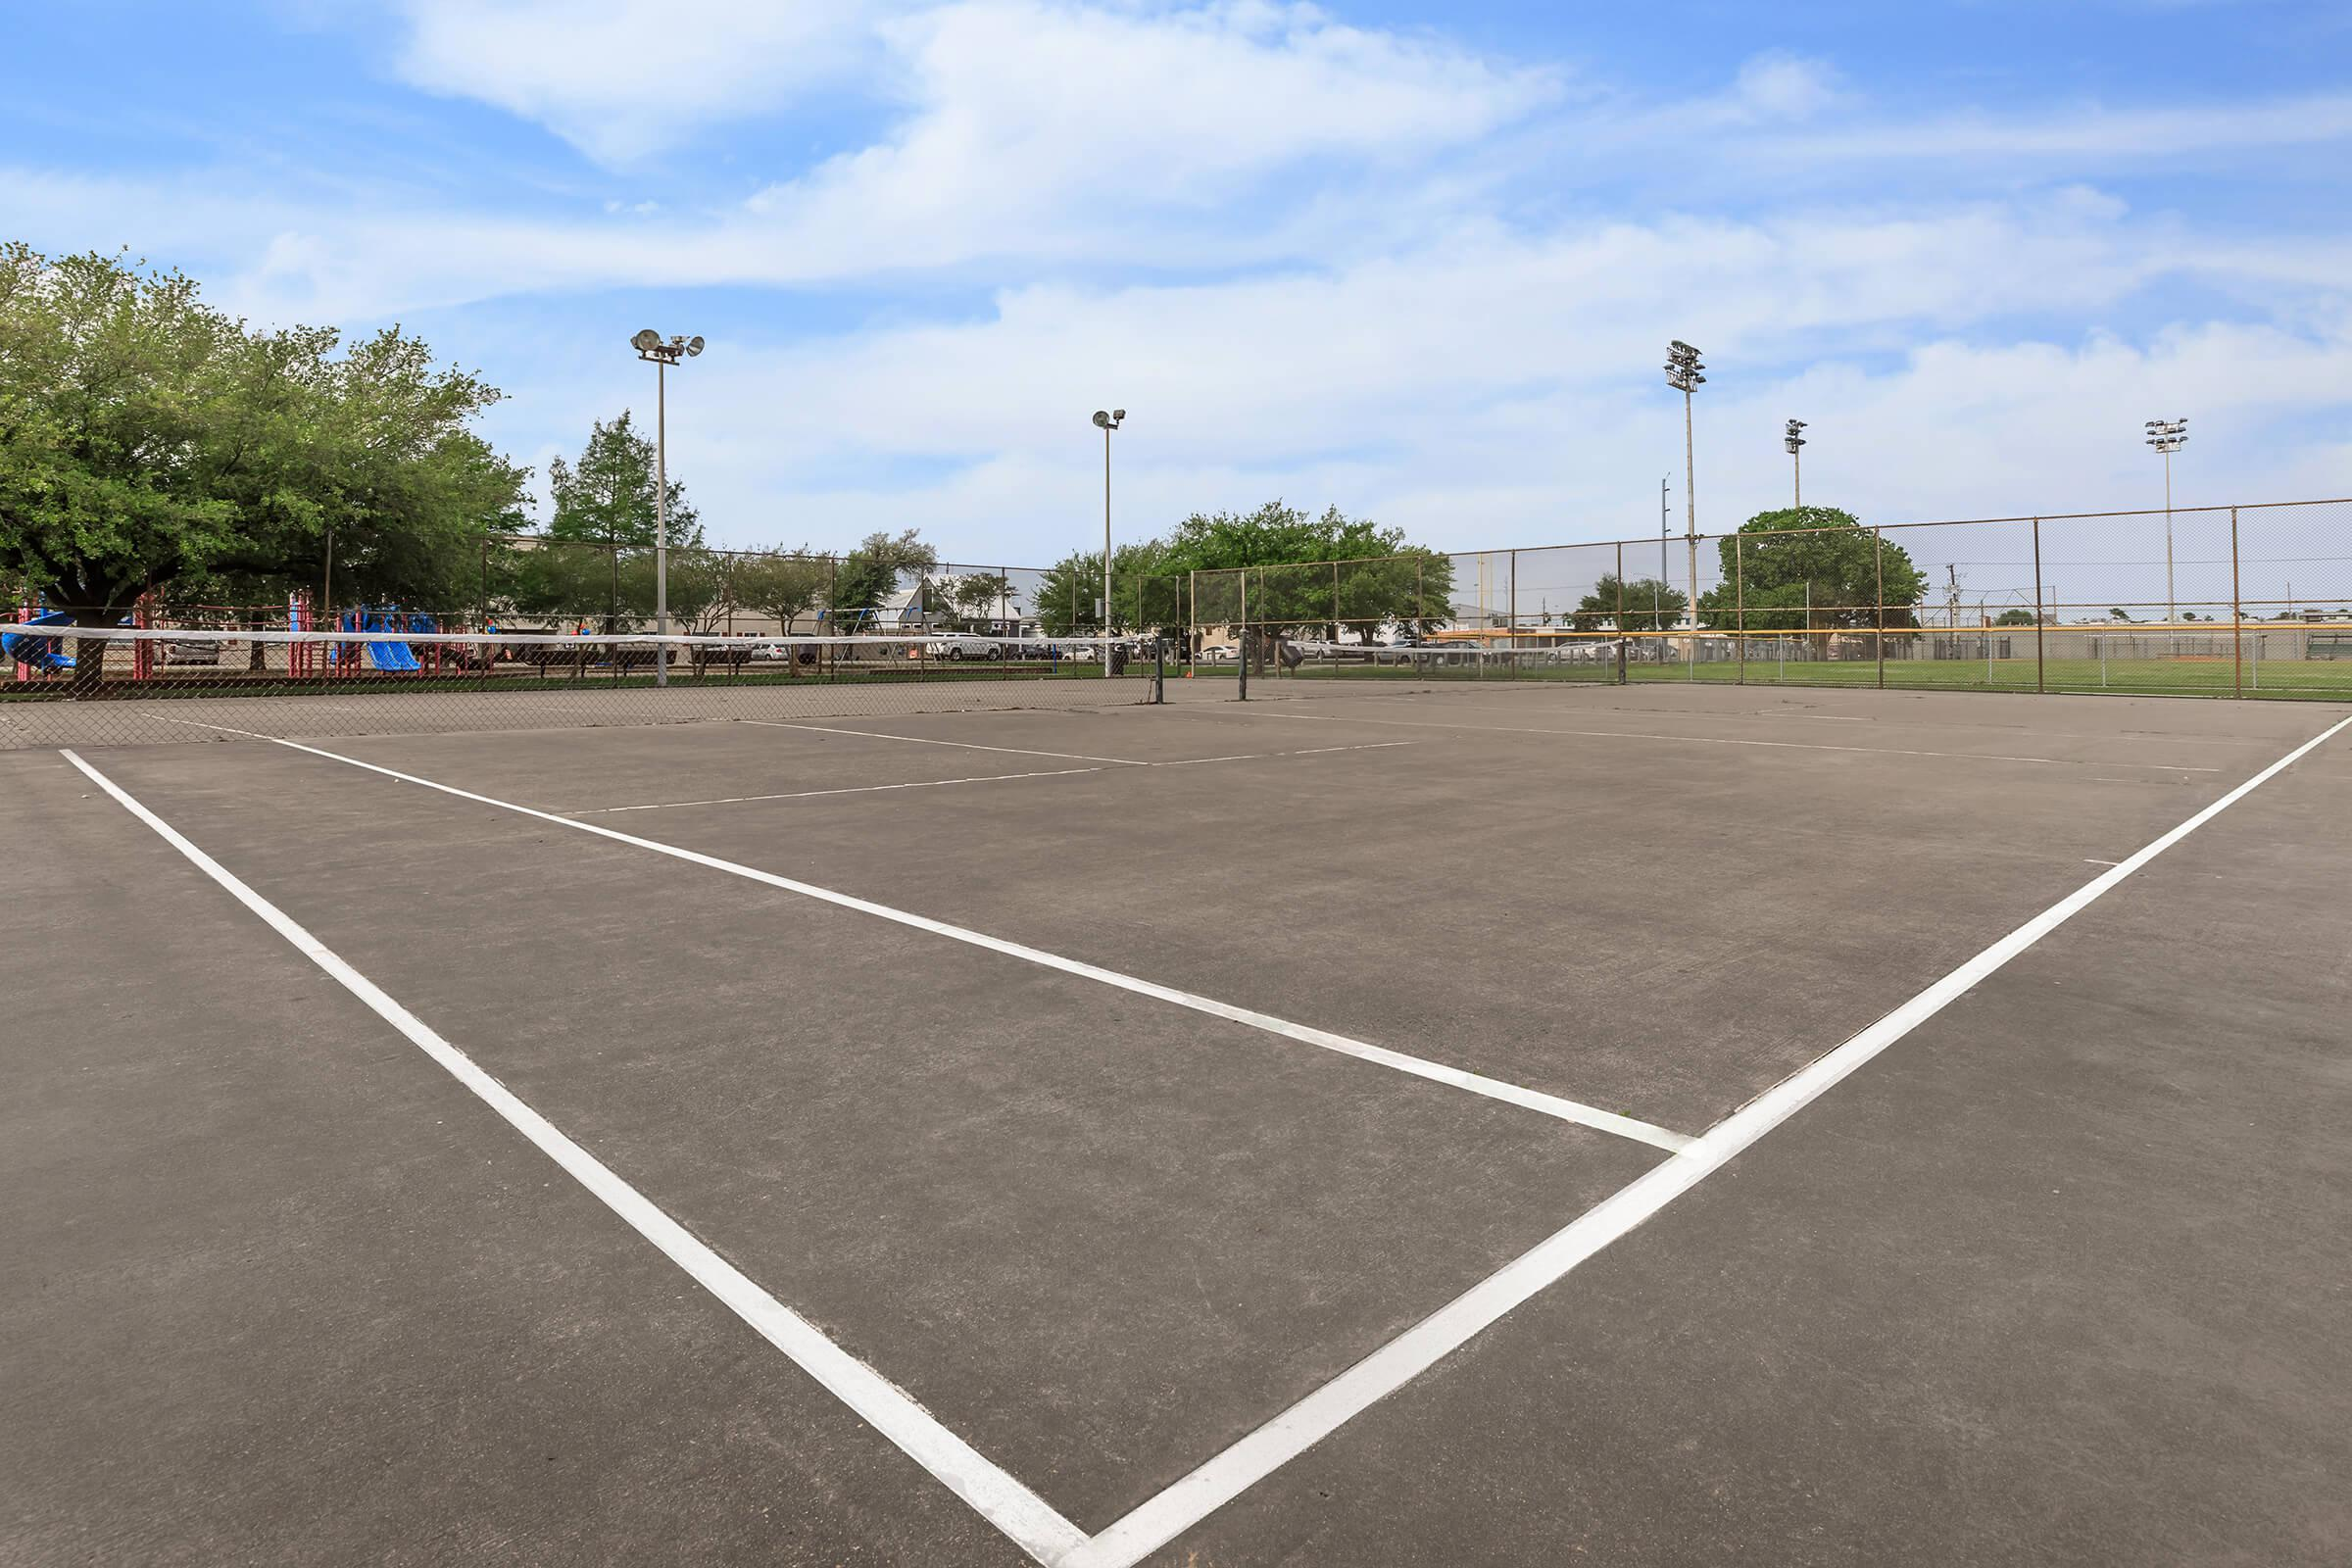 a basketball court in the middle of a road